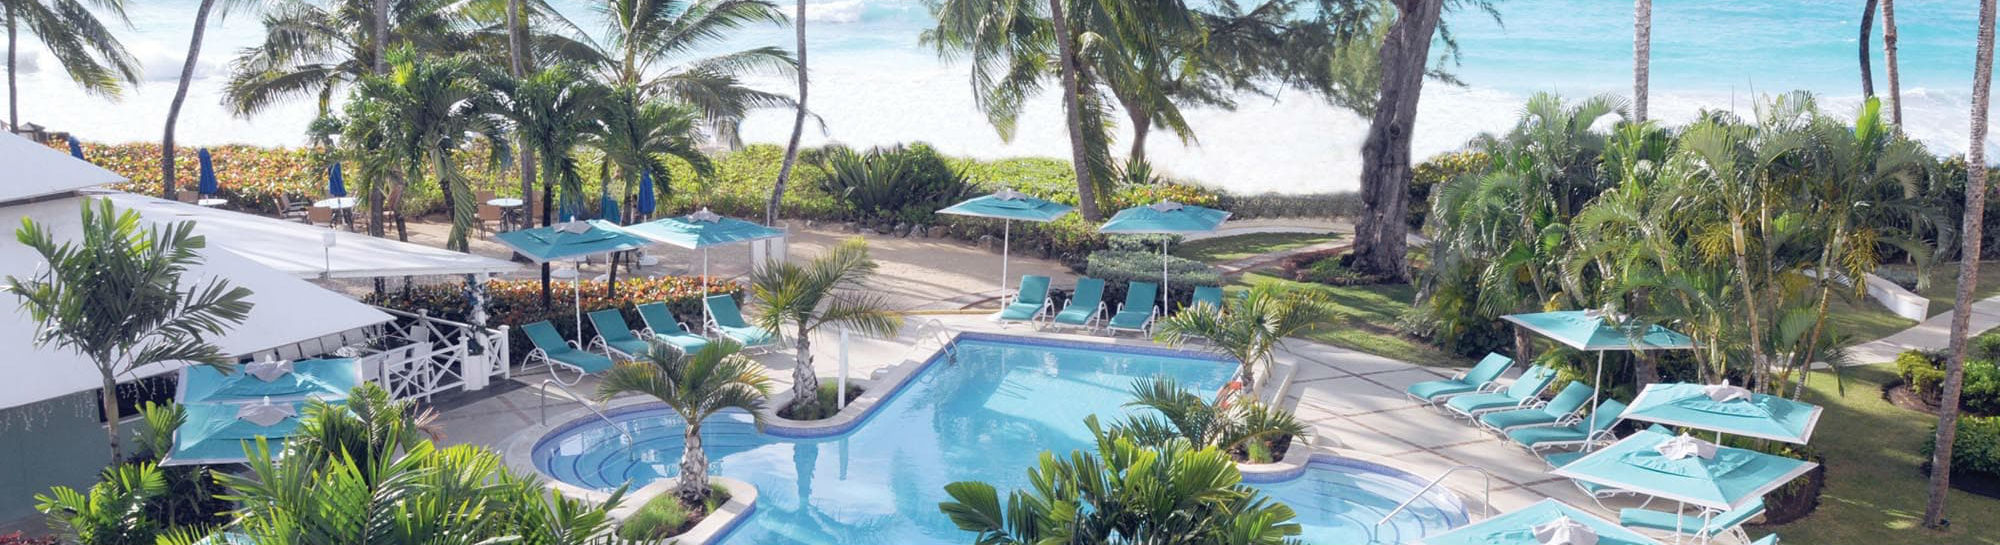 Main pool with ocean view at the Turtle Beach by Elegant Hotels